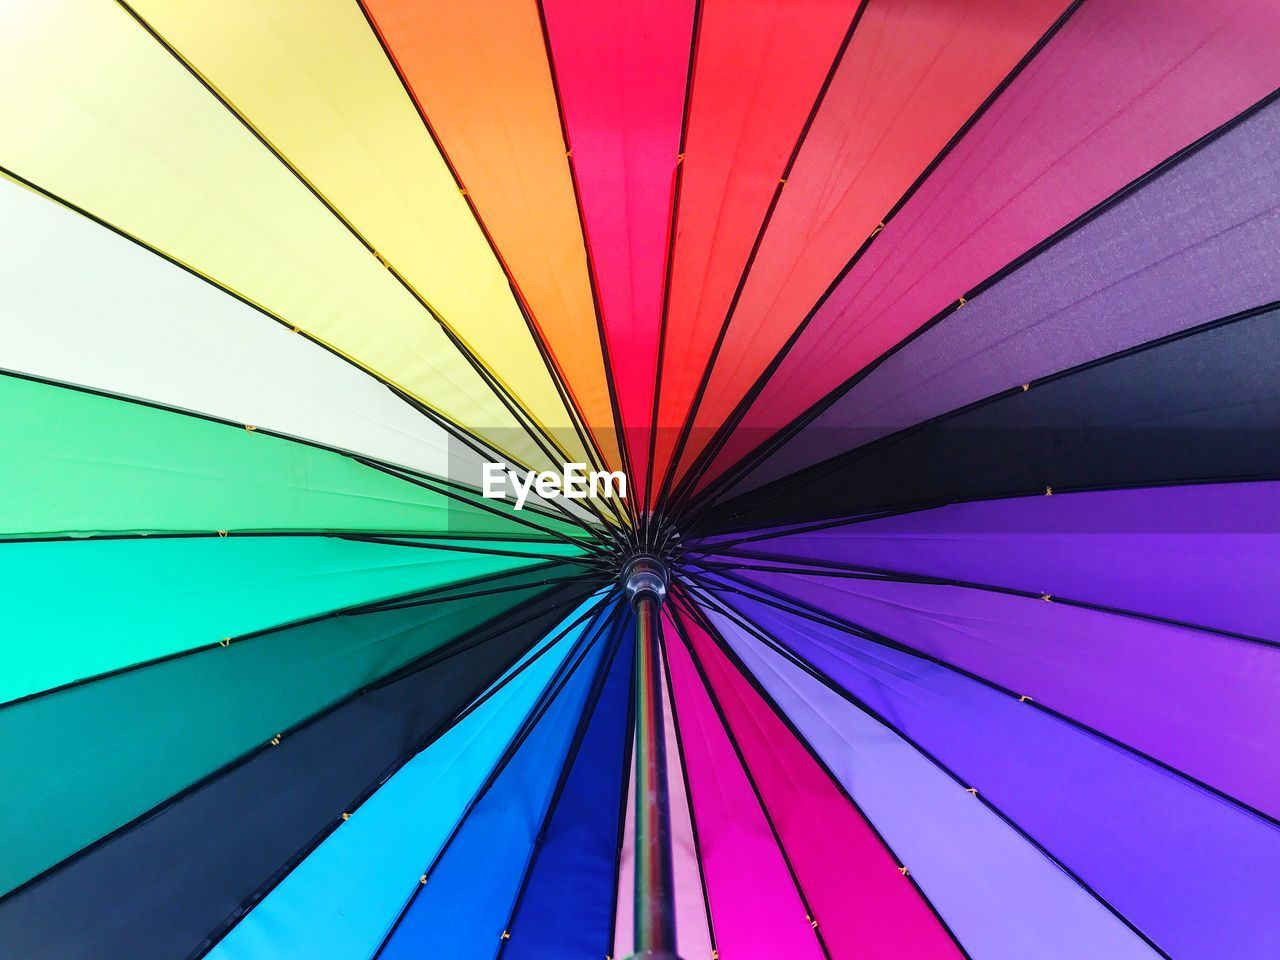 Low Angle View Of Colorful Umbrella